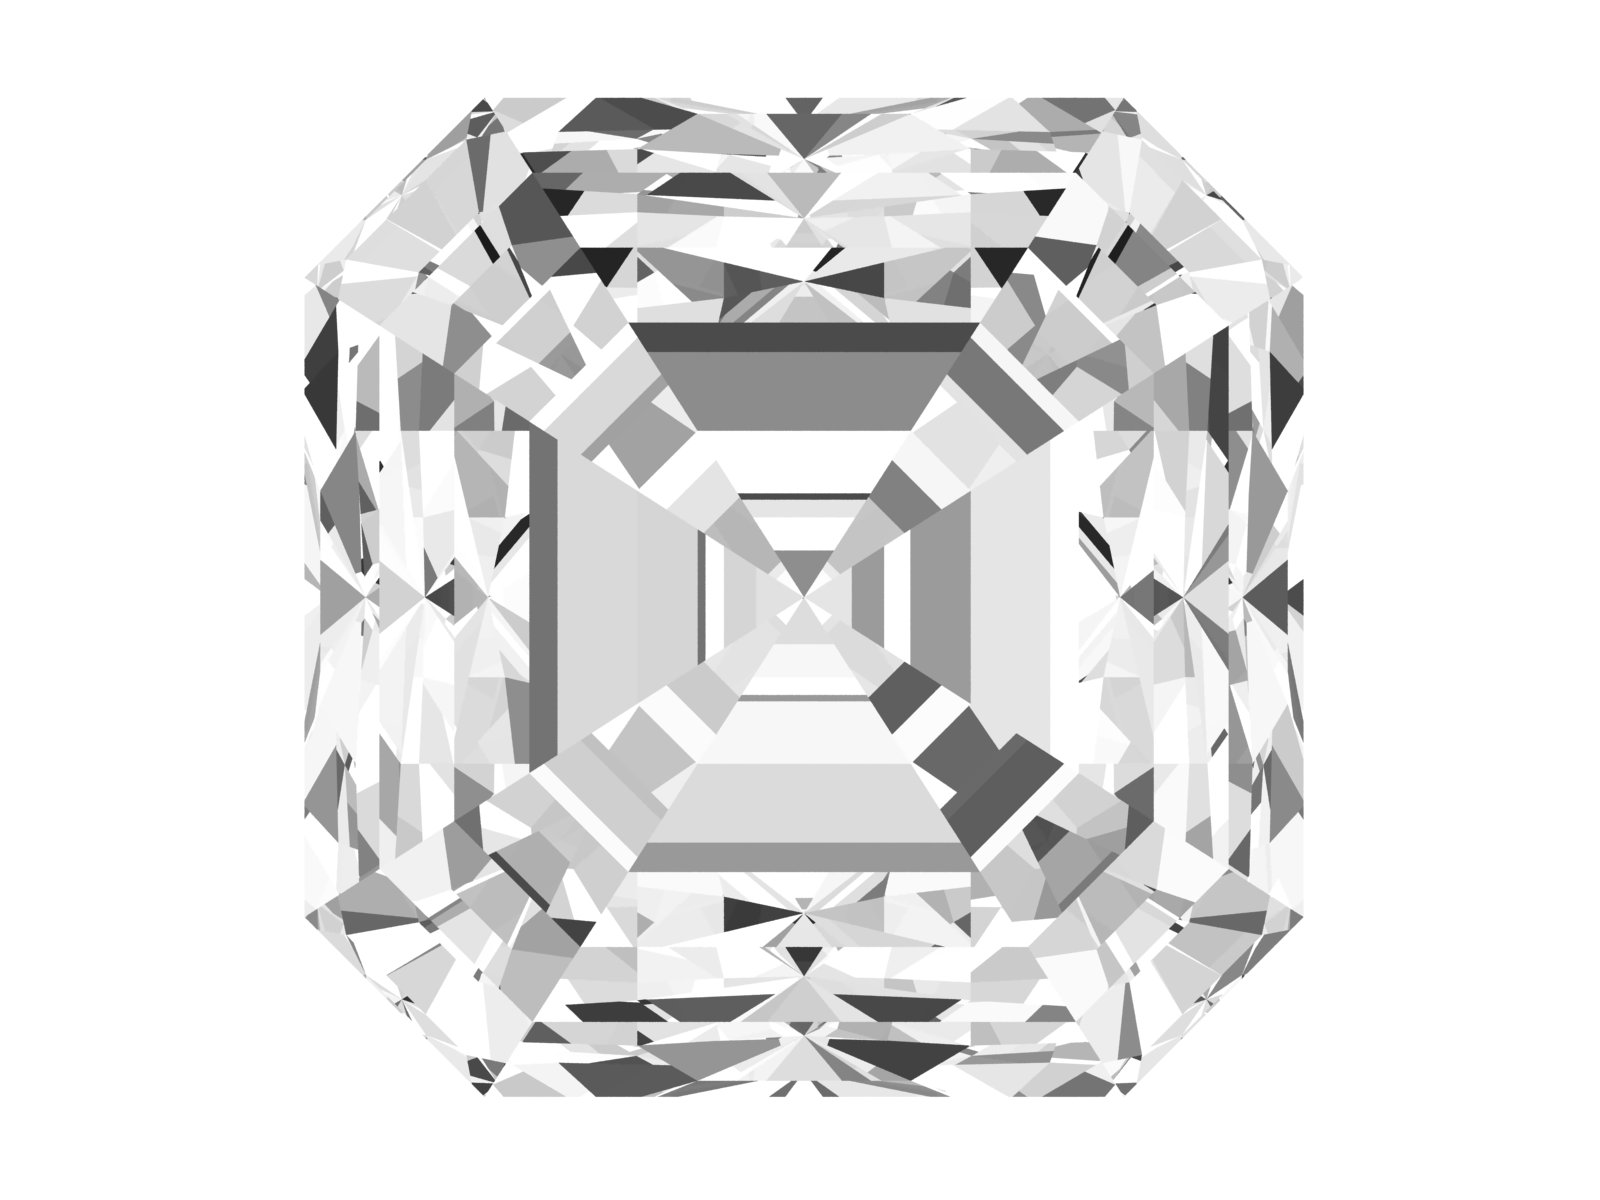 0.5 Carat Asscher Diamond